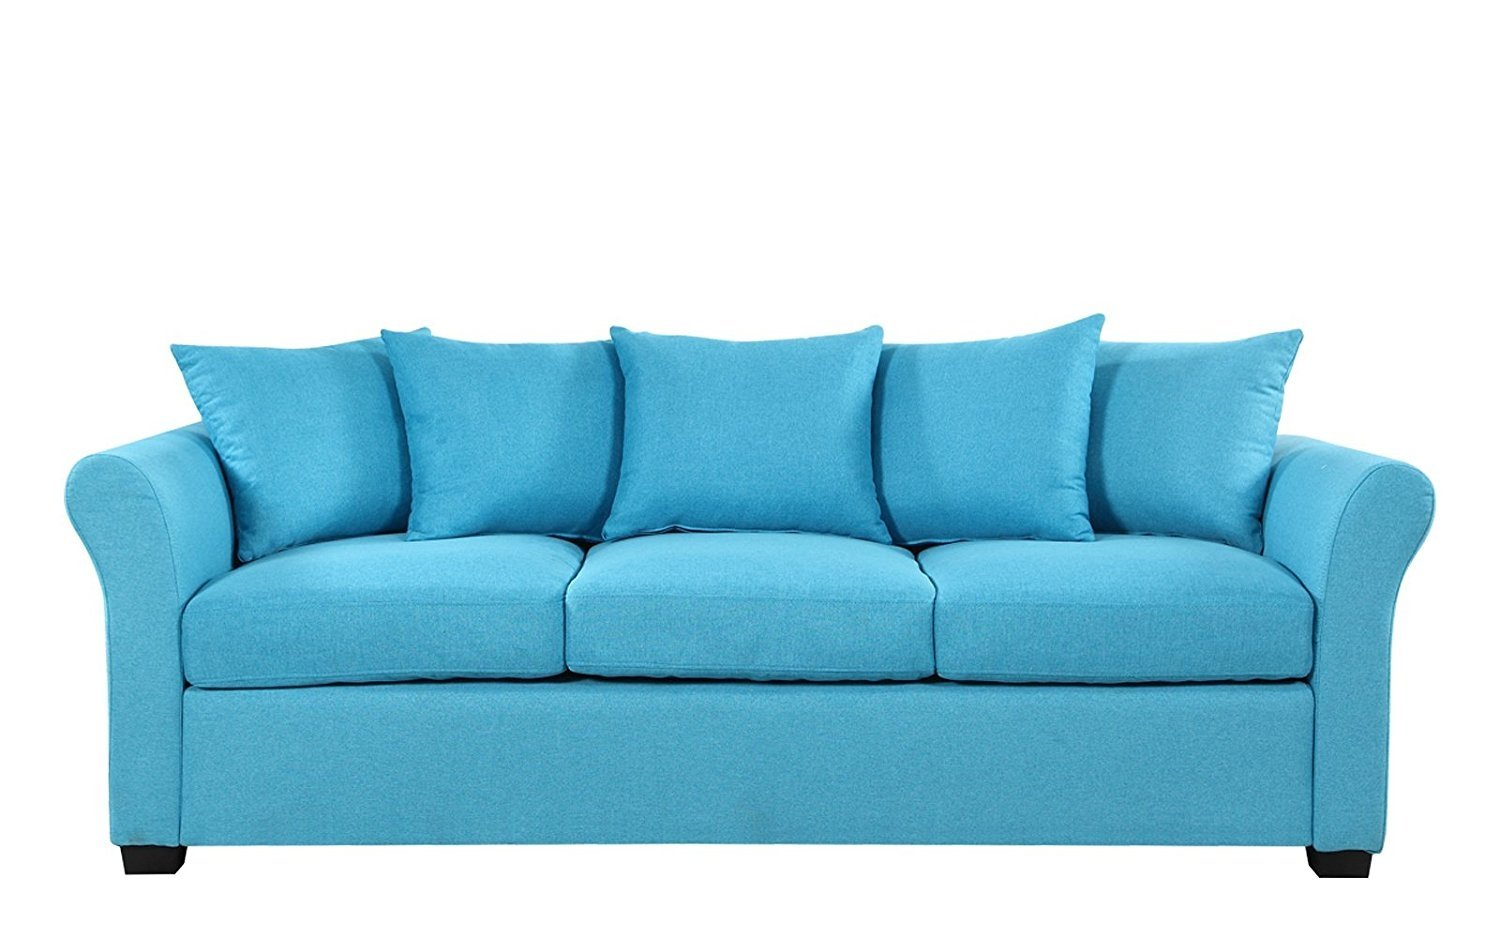 Details About Classic Comfortable Linen Fabric Sofa For Modern Living Room  Family Room, Blue